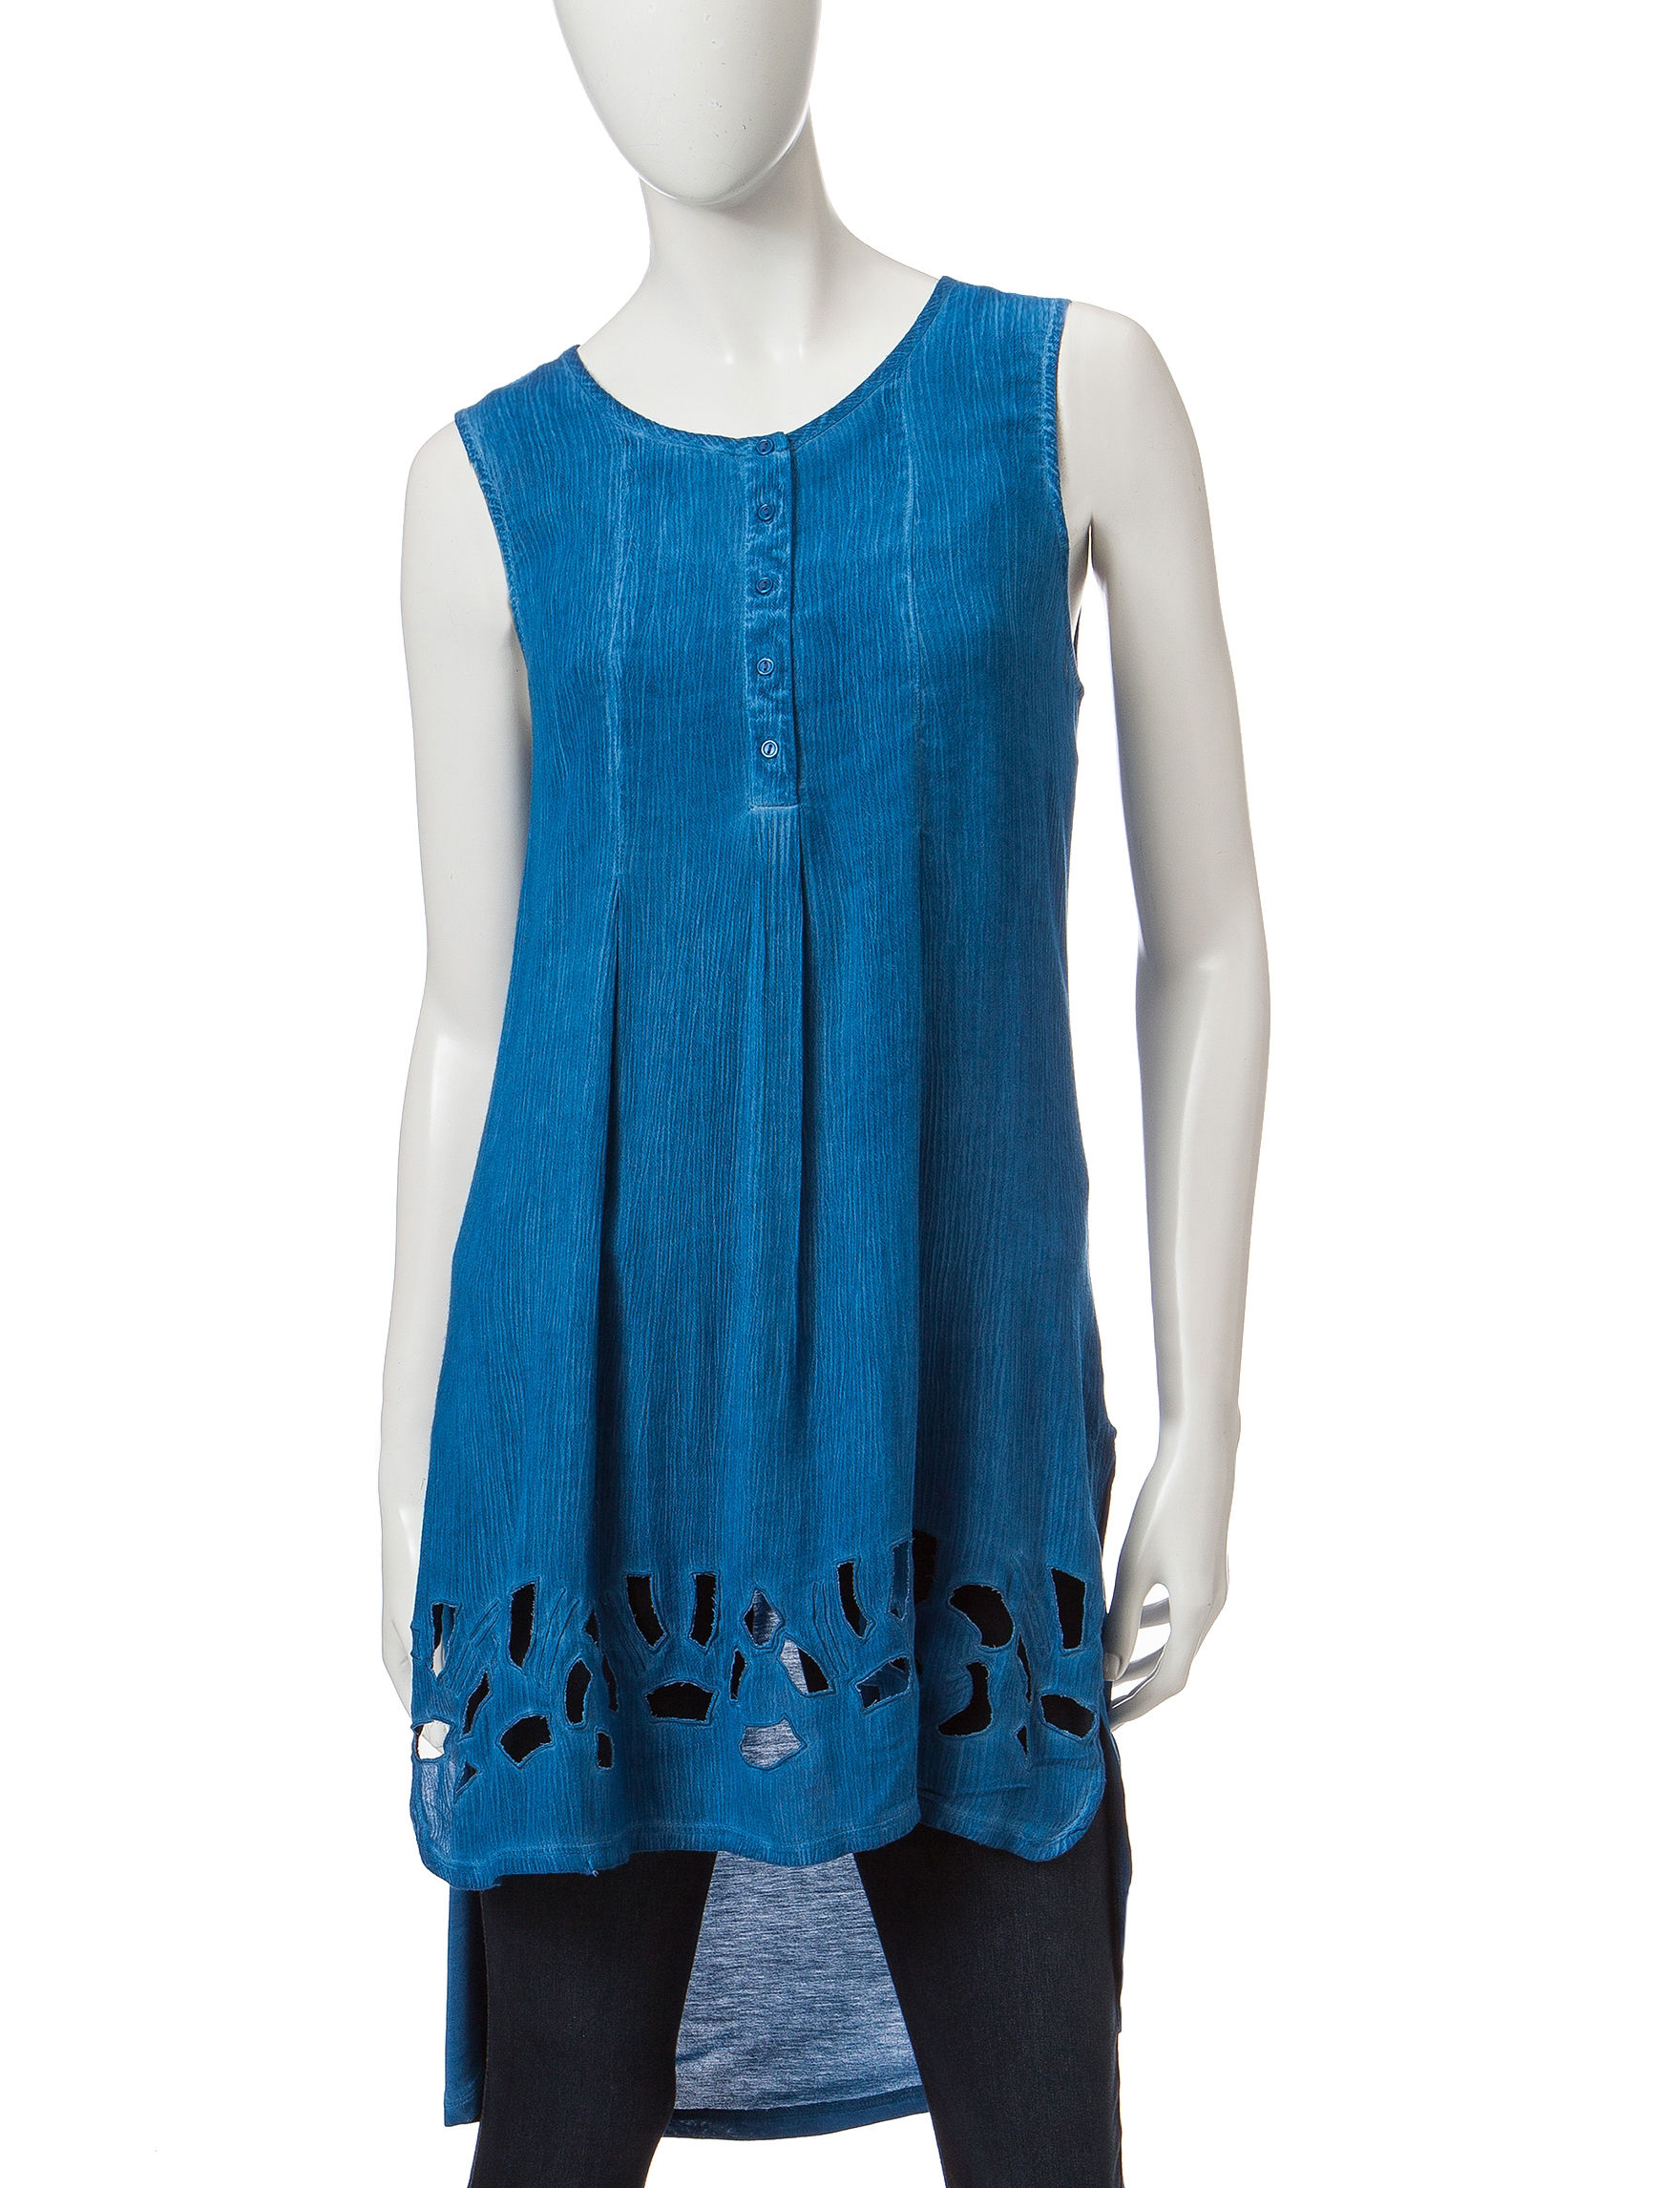 Nine West Jeans Blue Tunics